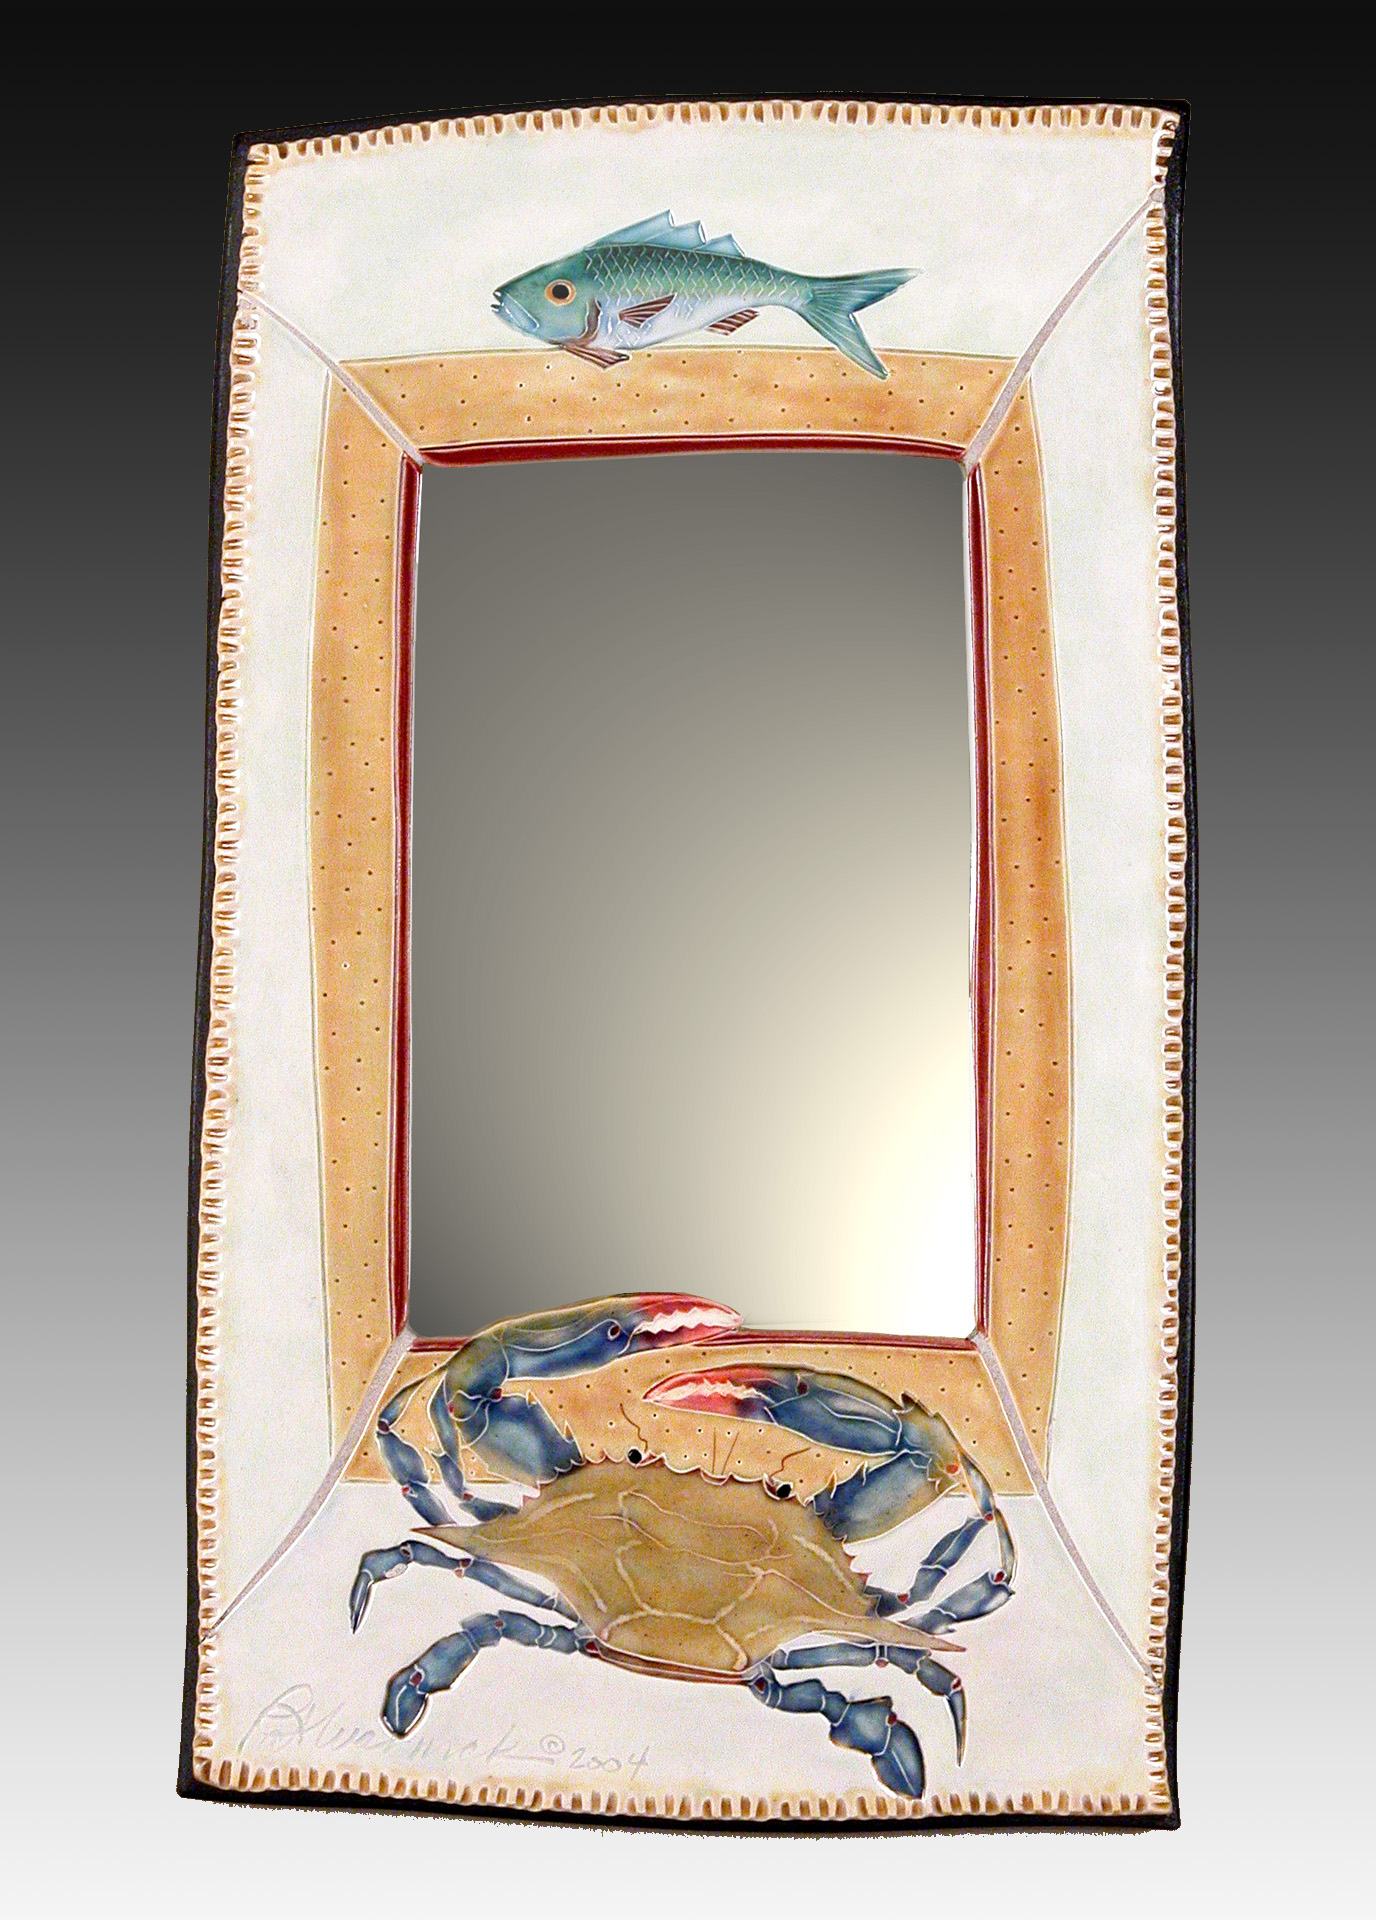 Crab & Fish Mirror